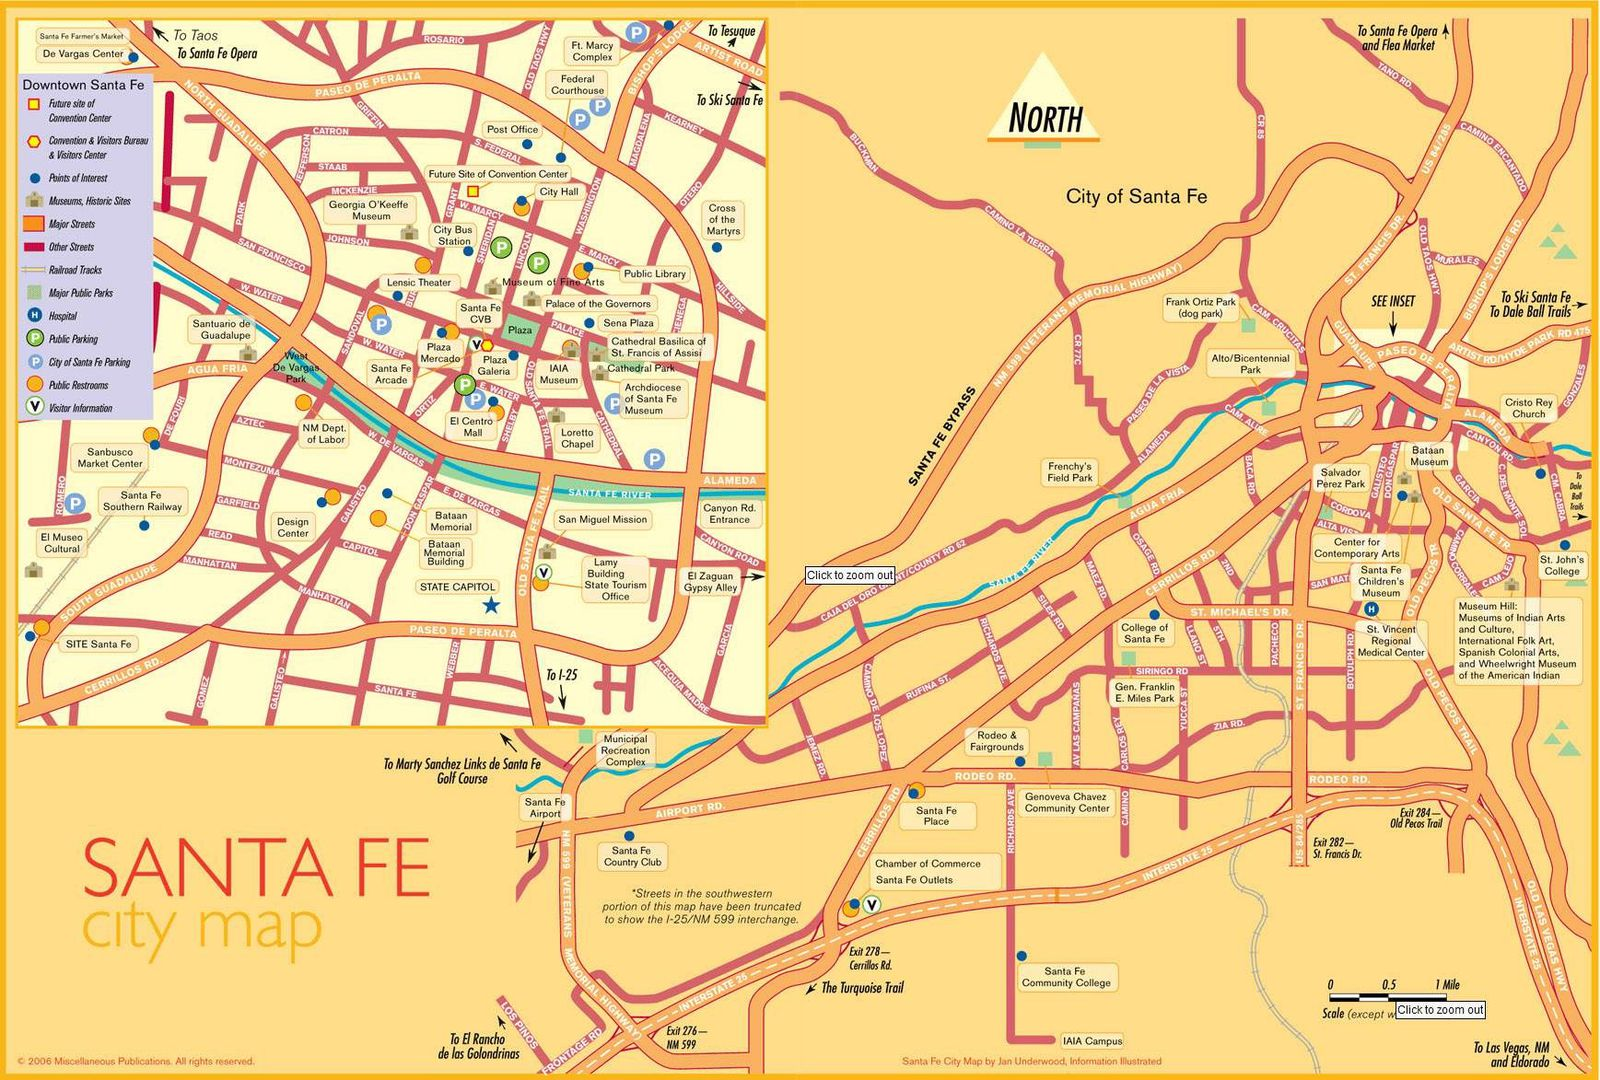 Santa Fé city map